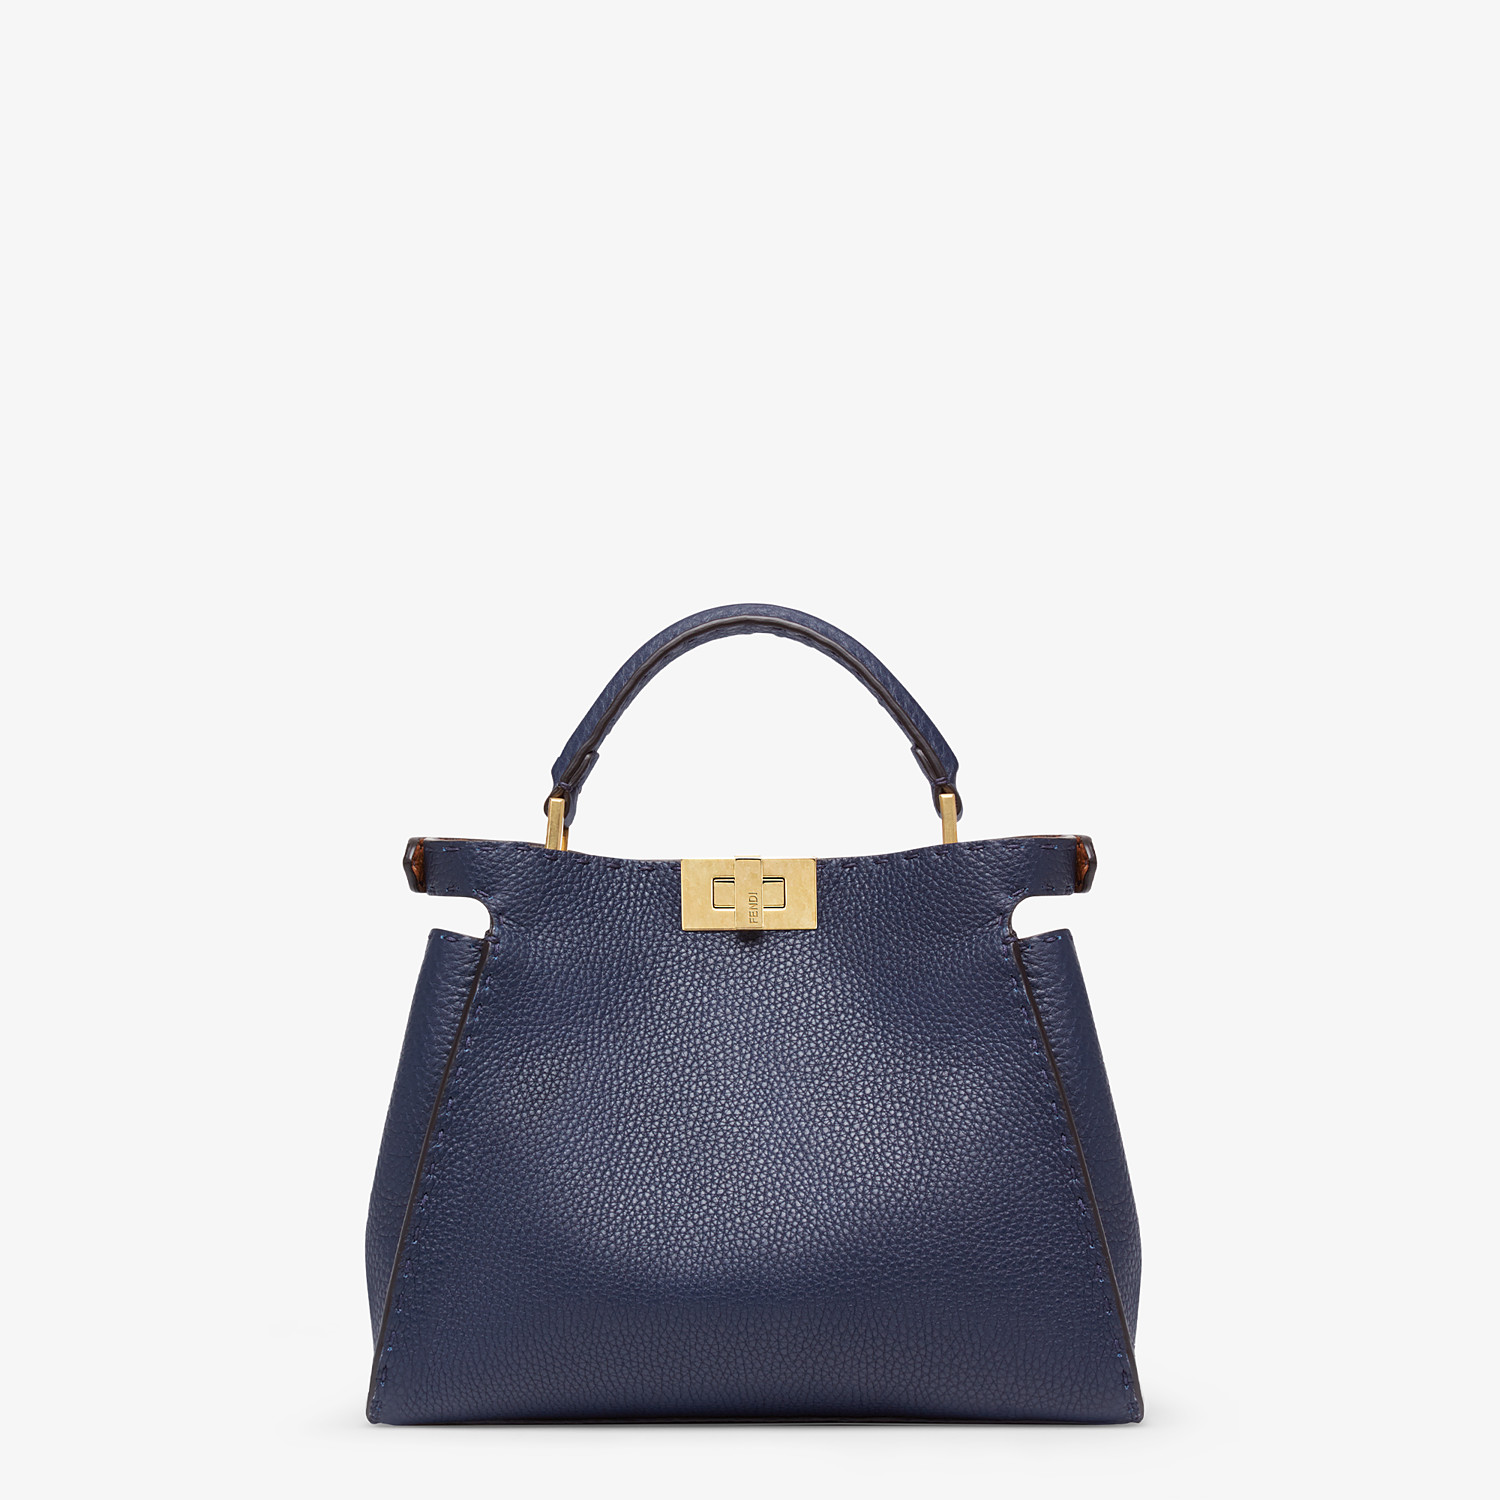 FENDI PEEKABOO ICONIC ESSENTIALLY - Blue leather bag - view 4 detail